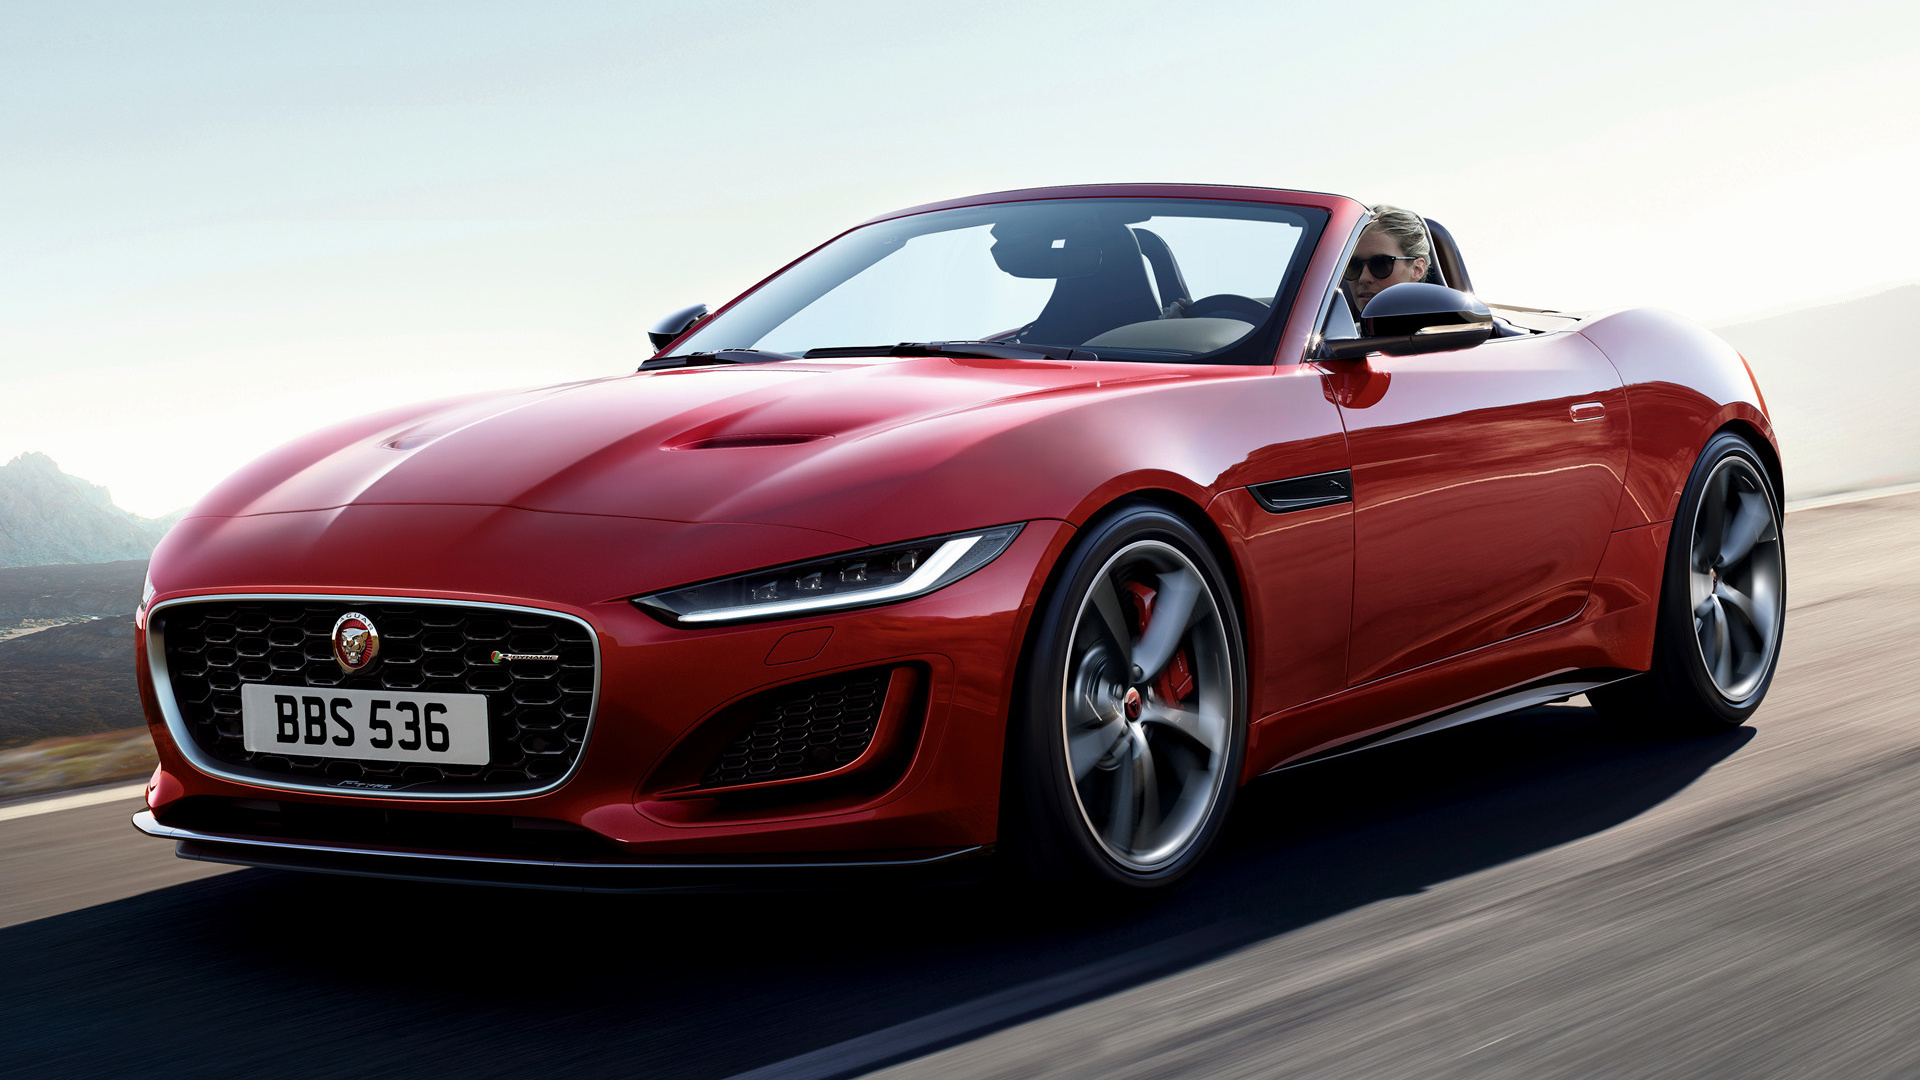 2020 Jaguar F-Type Convertible R-Dynamic - Wallpapers and ...